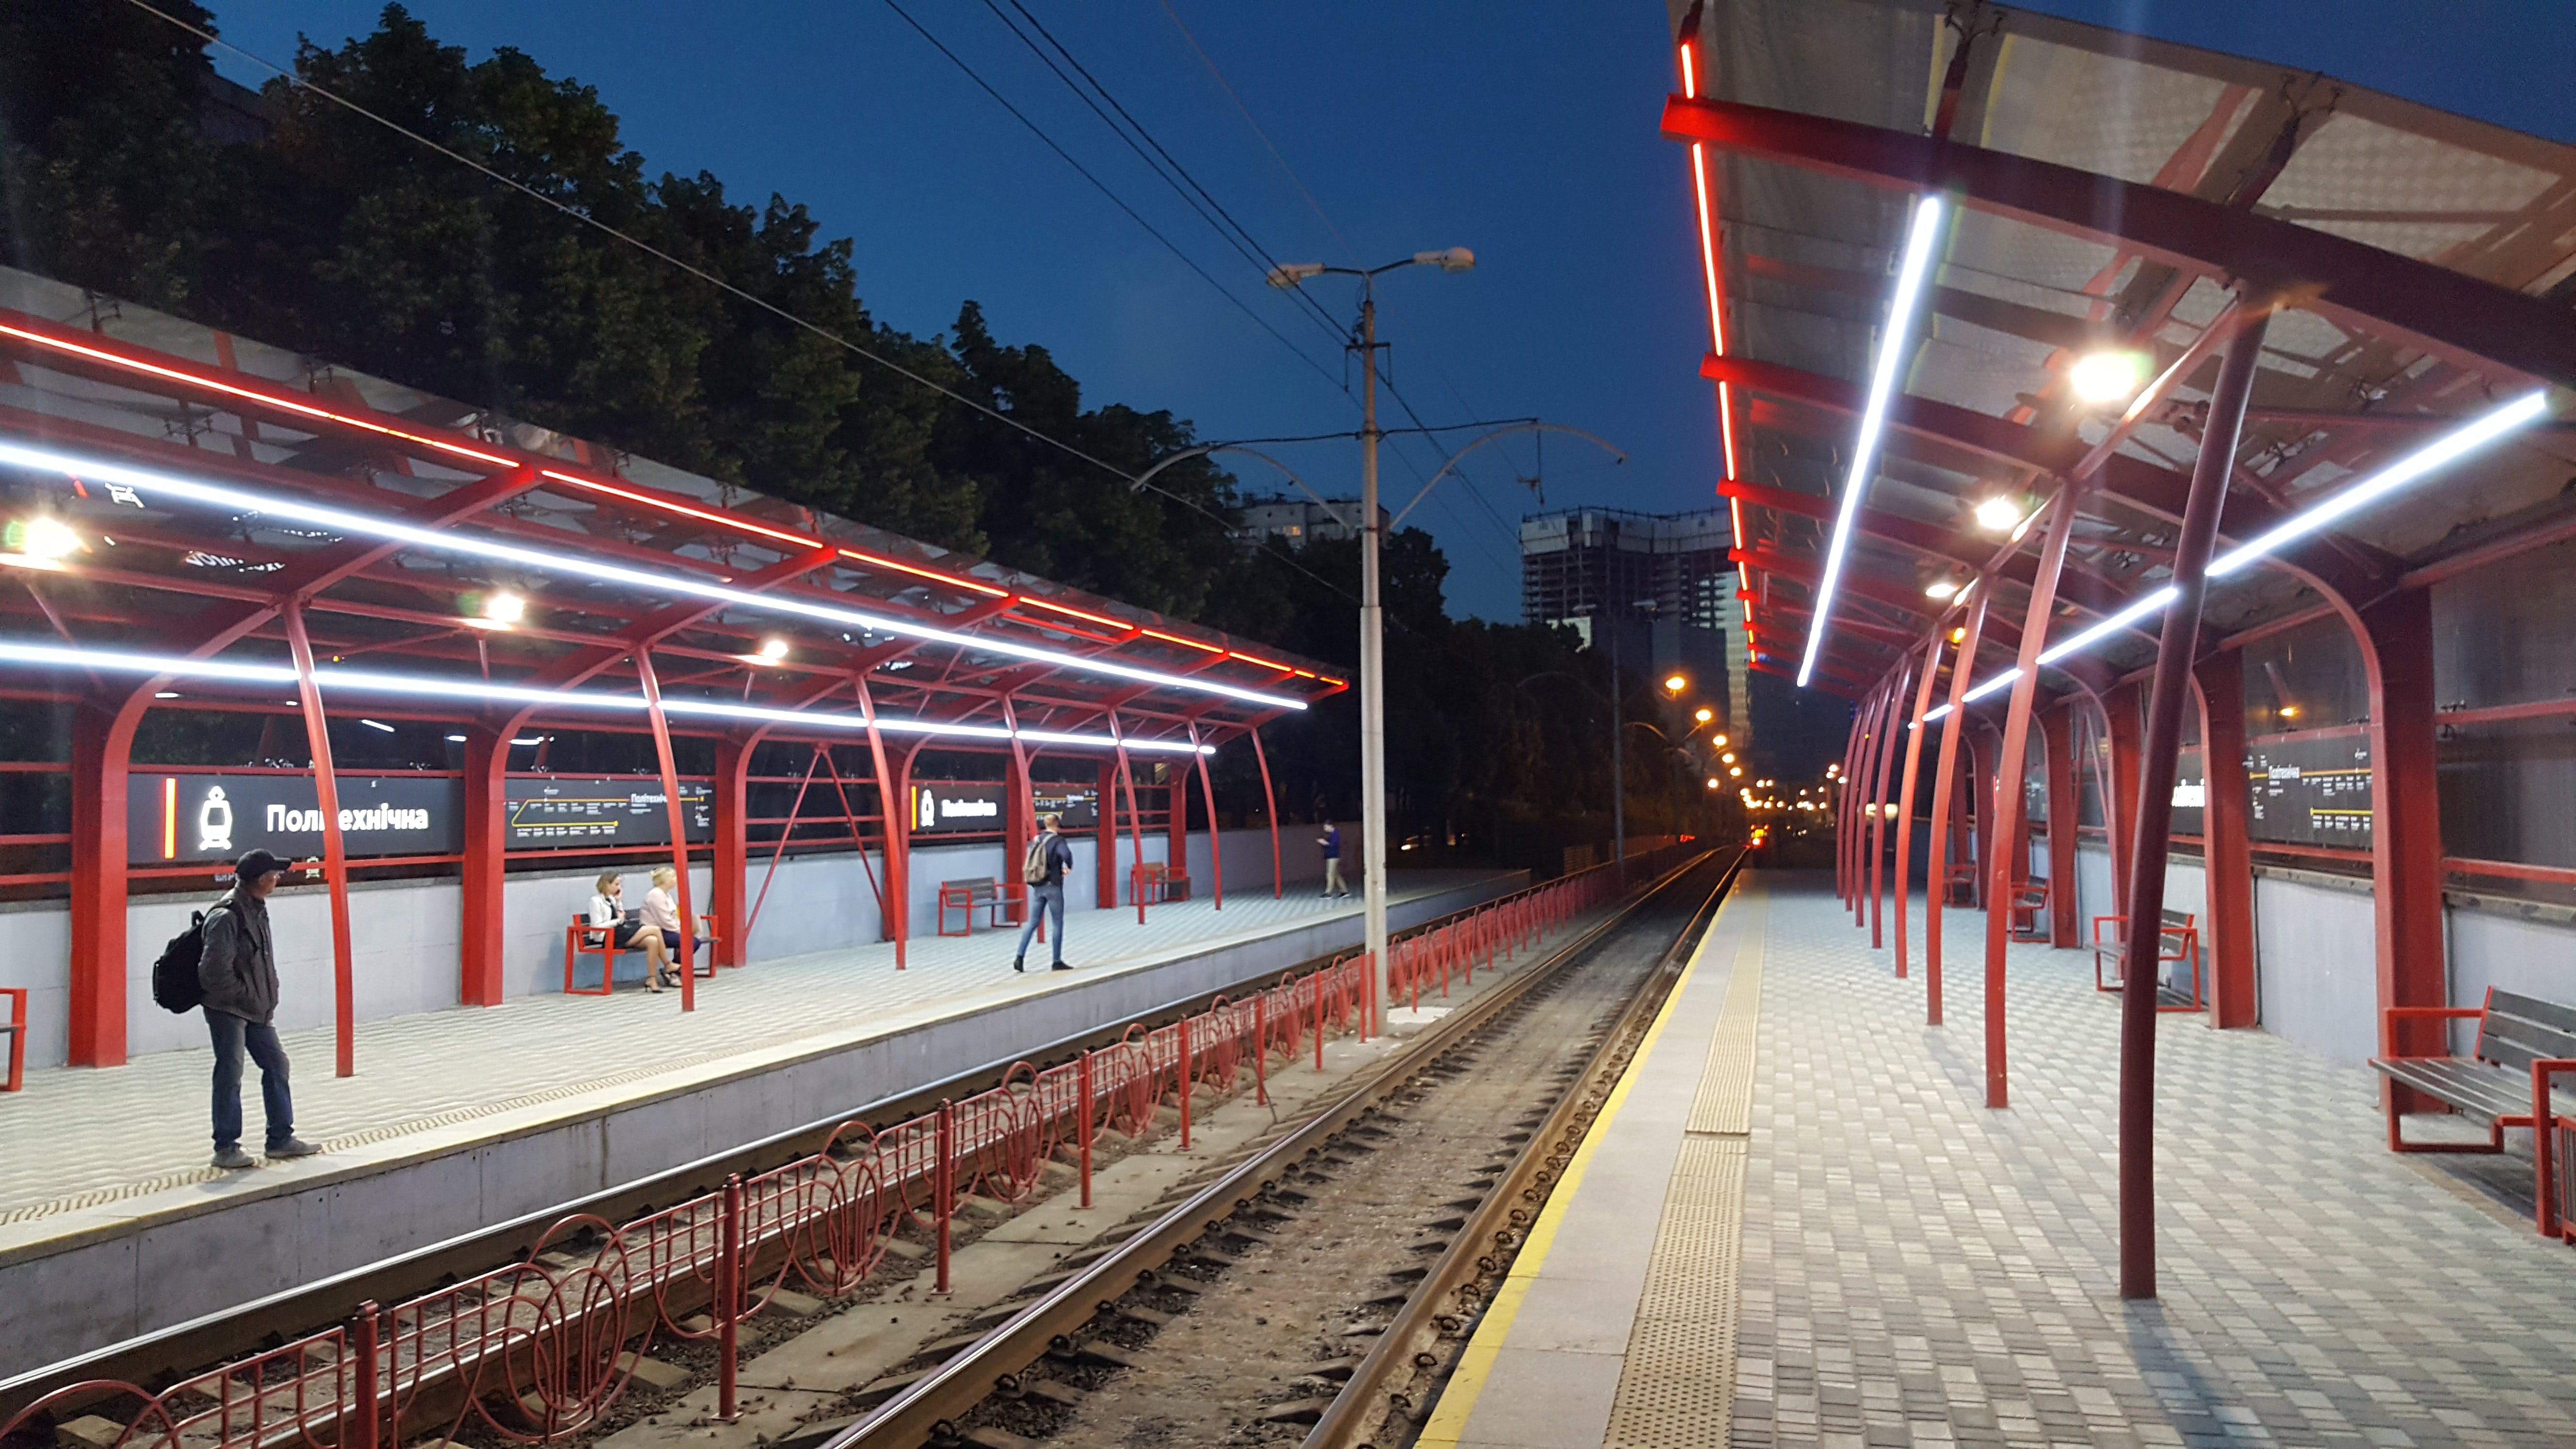 Man Waiting on Train Platform during Nighttime